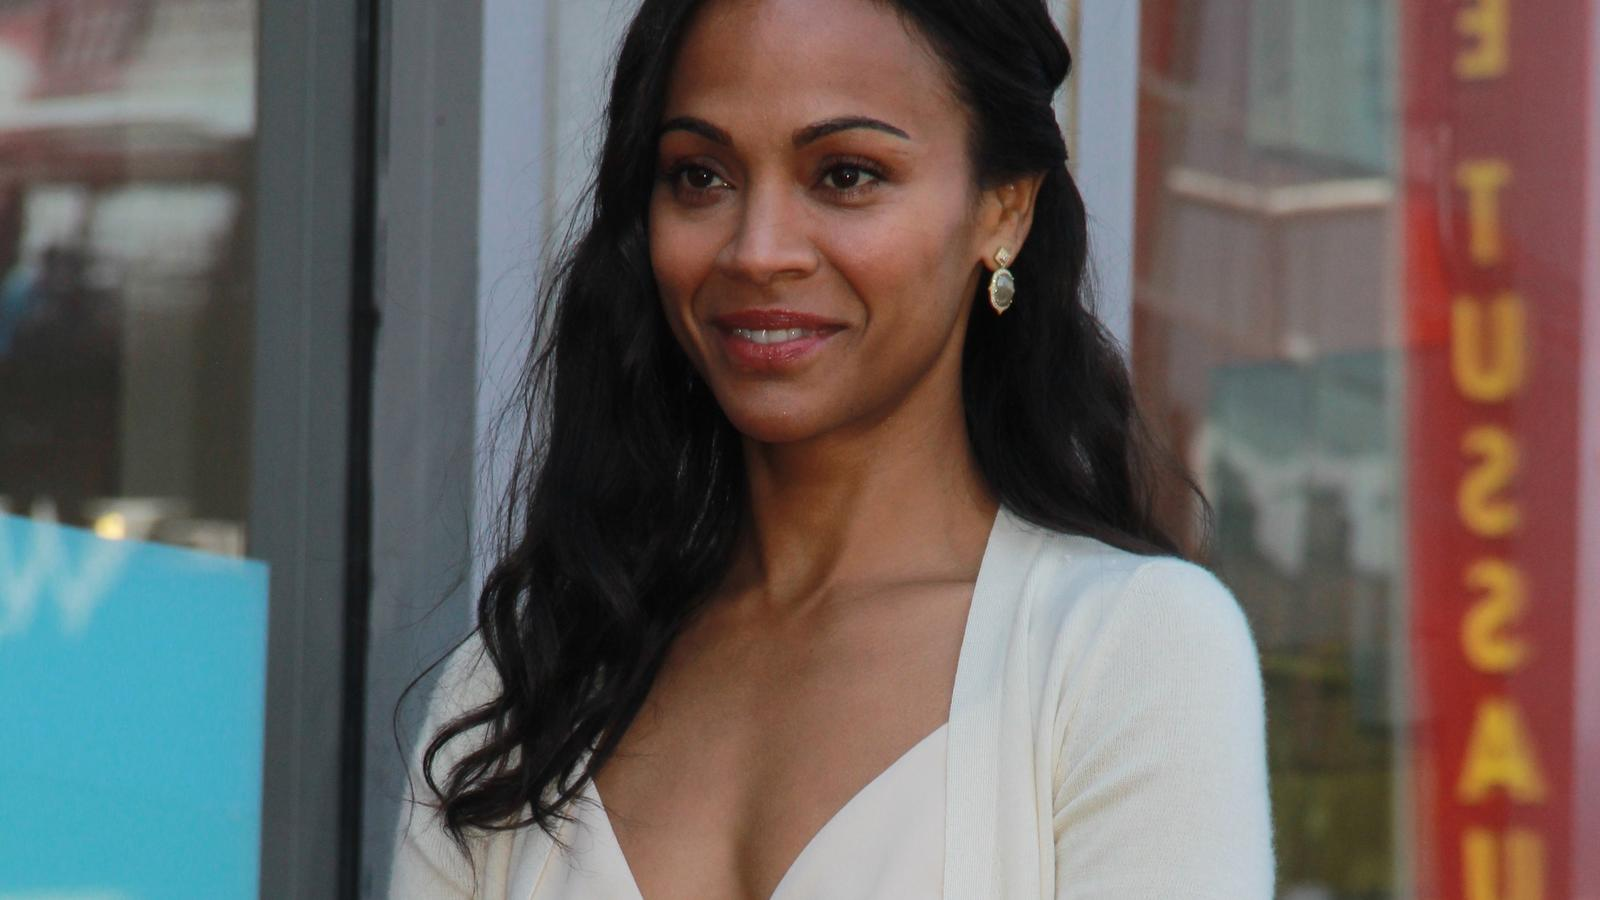 May 3, 2018 - Los Angeles, California, U.S - Zoe Saldana star honoring ceremony on the Hollywood Walk of Fame in Los Angeles, May 3, 2018.